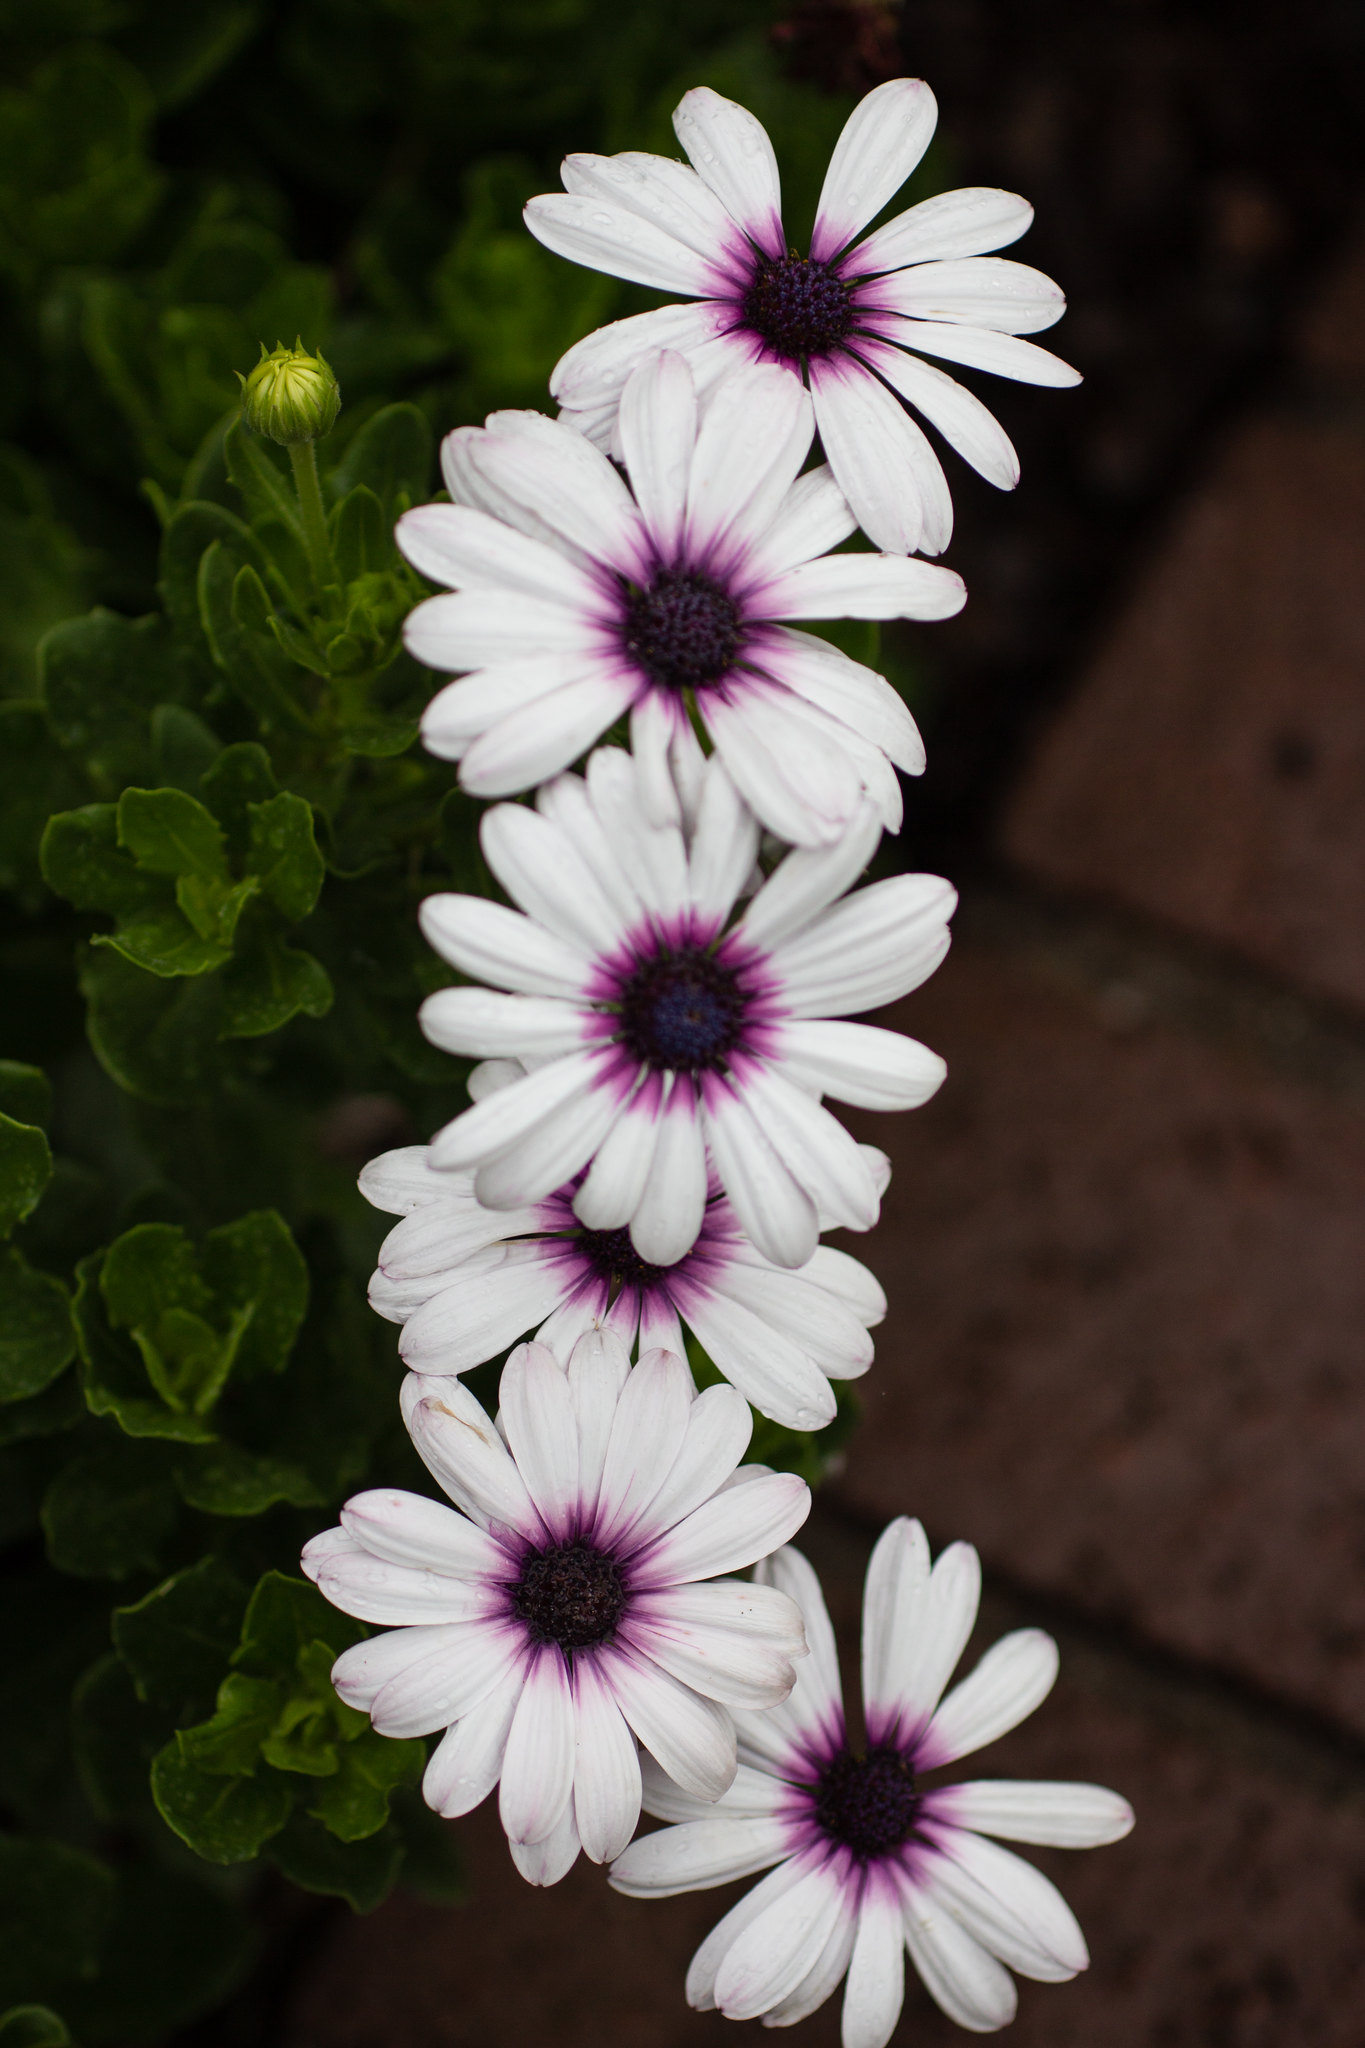 (nearly) straight line of daisies